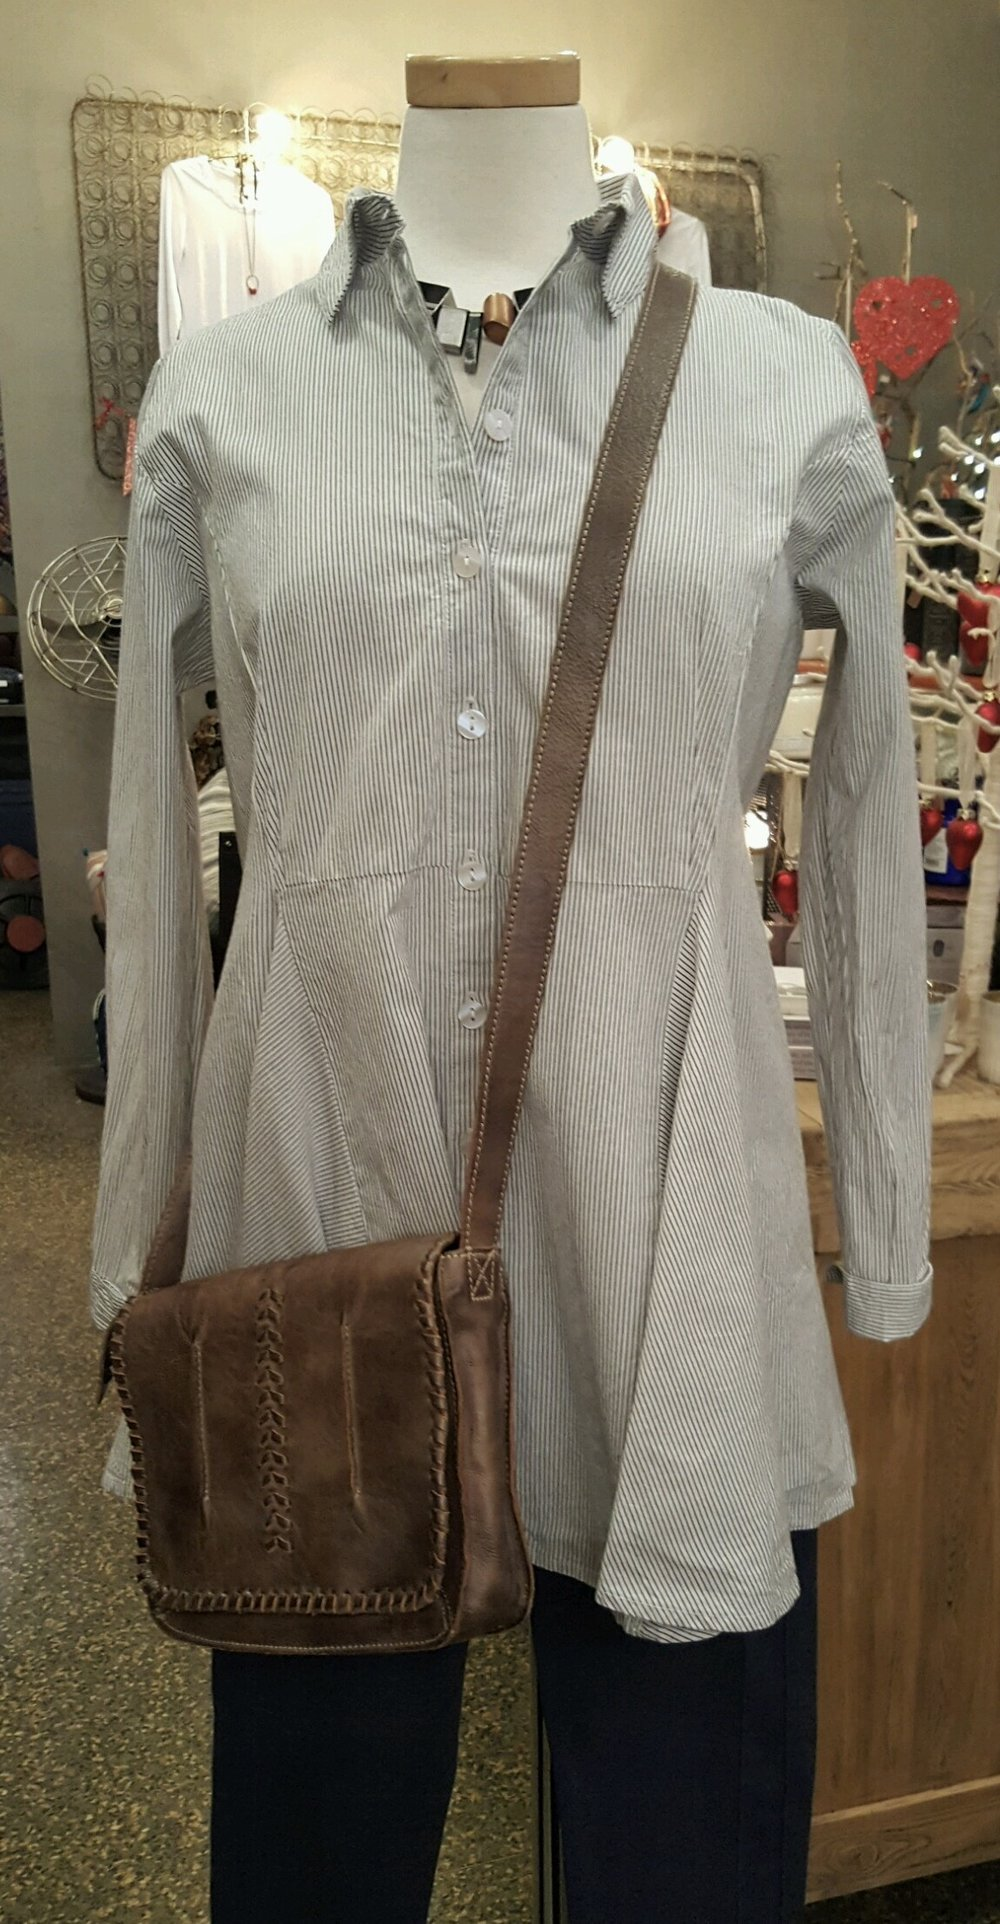 FullSizeRender_5 copy.jpg